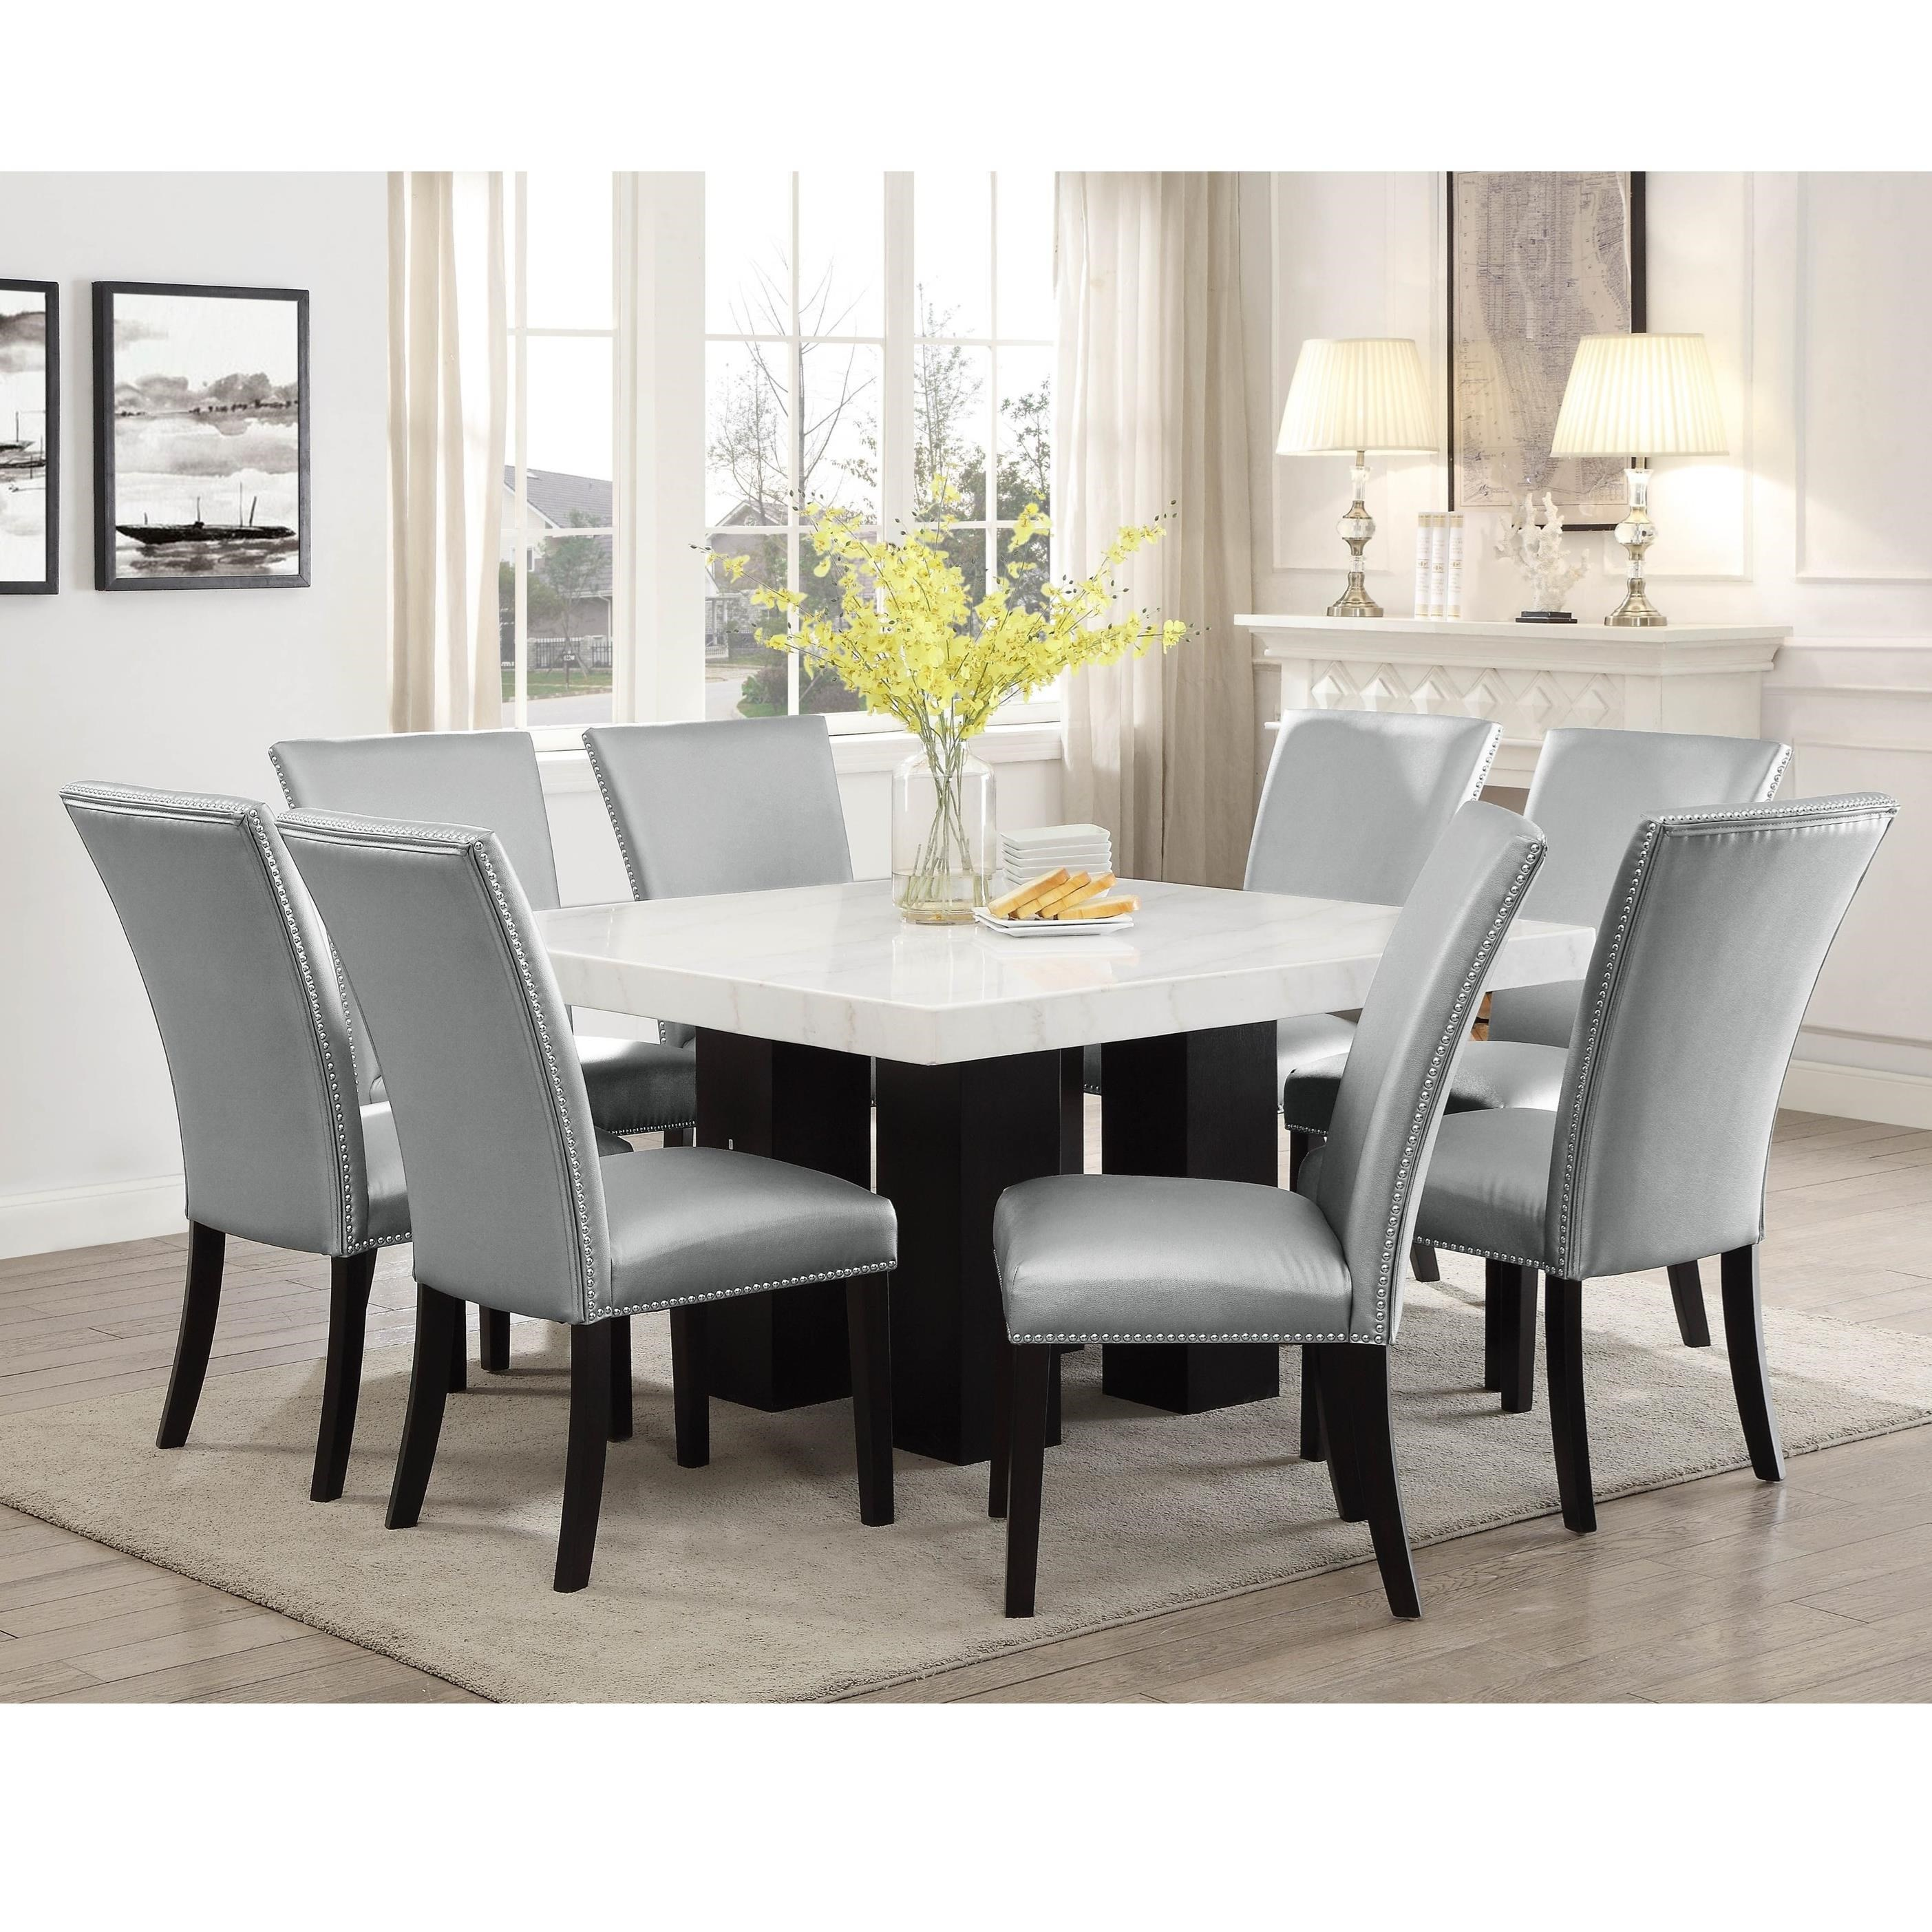 Steve Silver Camila 9 Piece Dining Set With Marble Table Top Wayside Furniture Dining 7 Or More Piece Sets